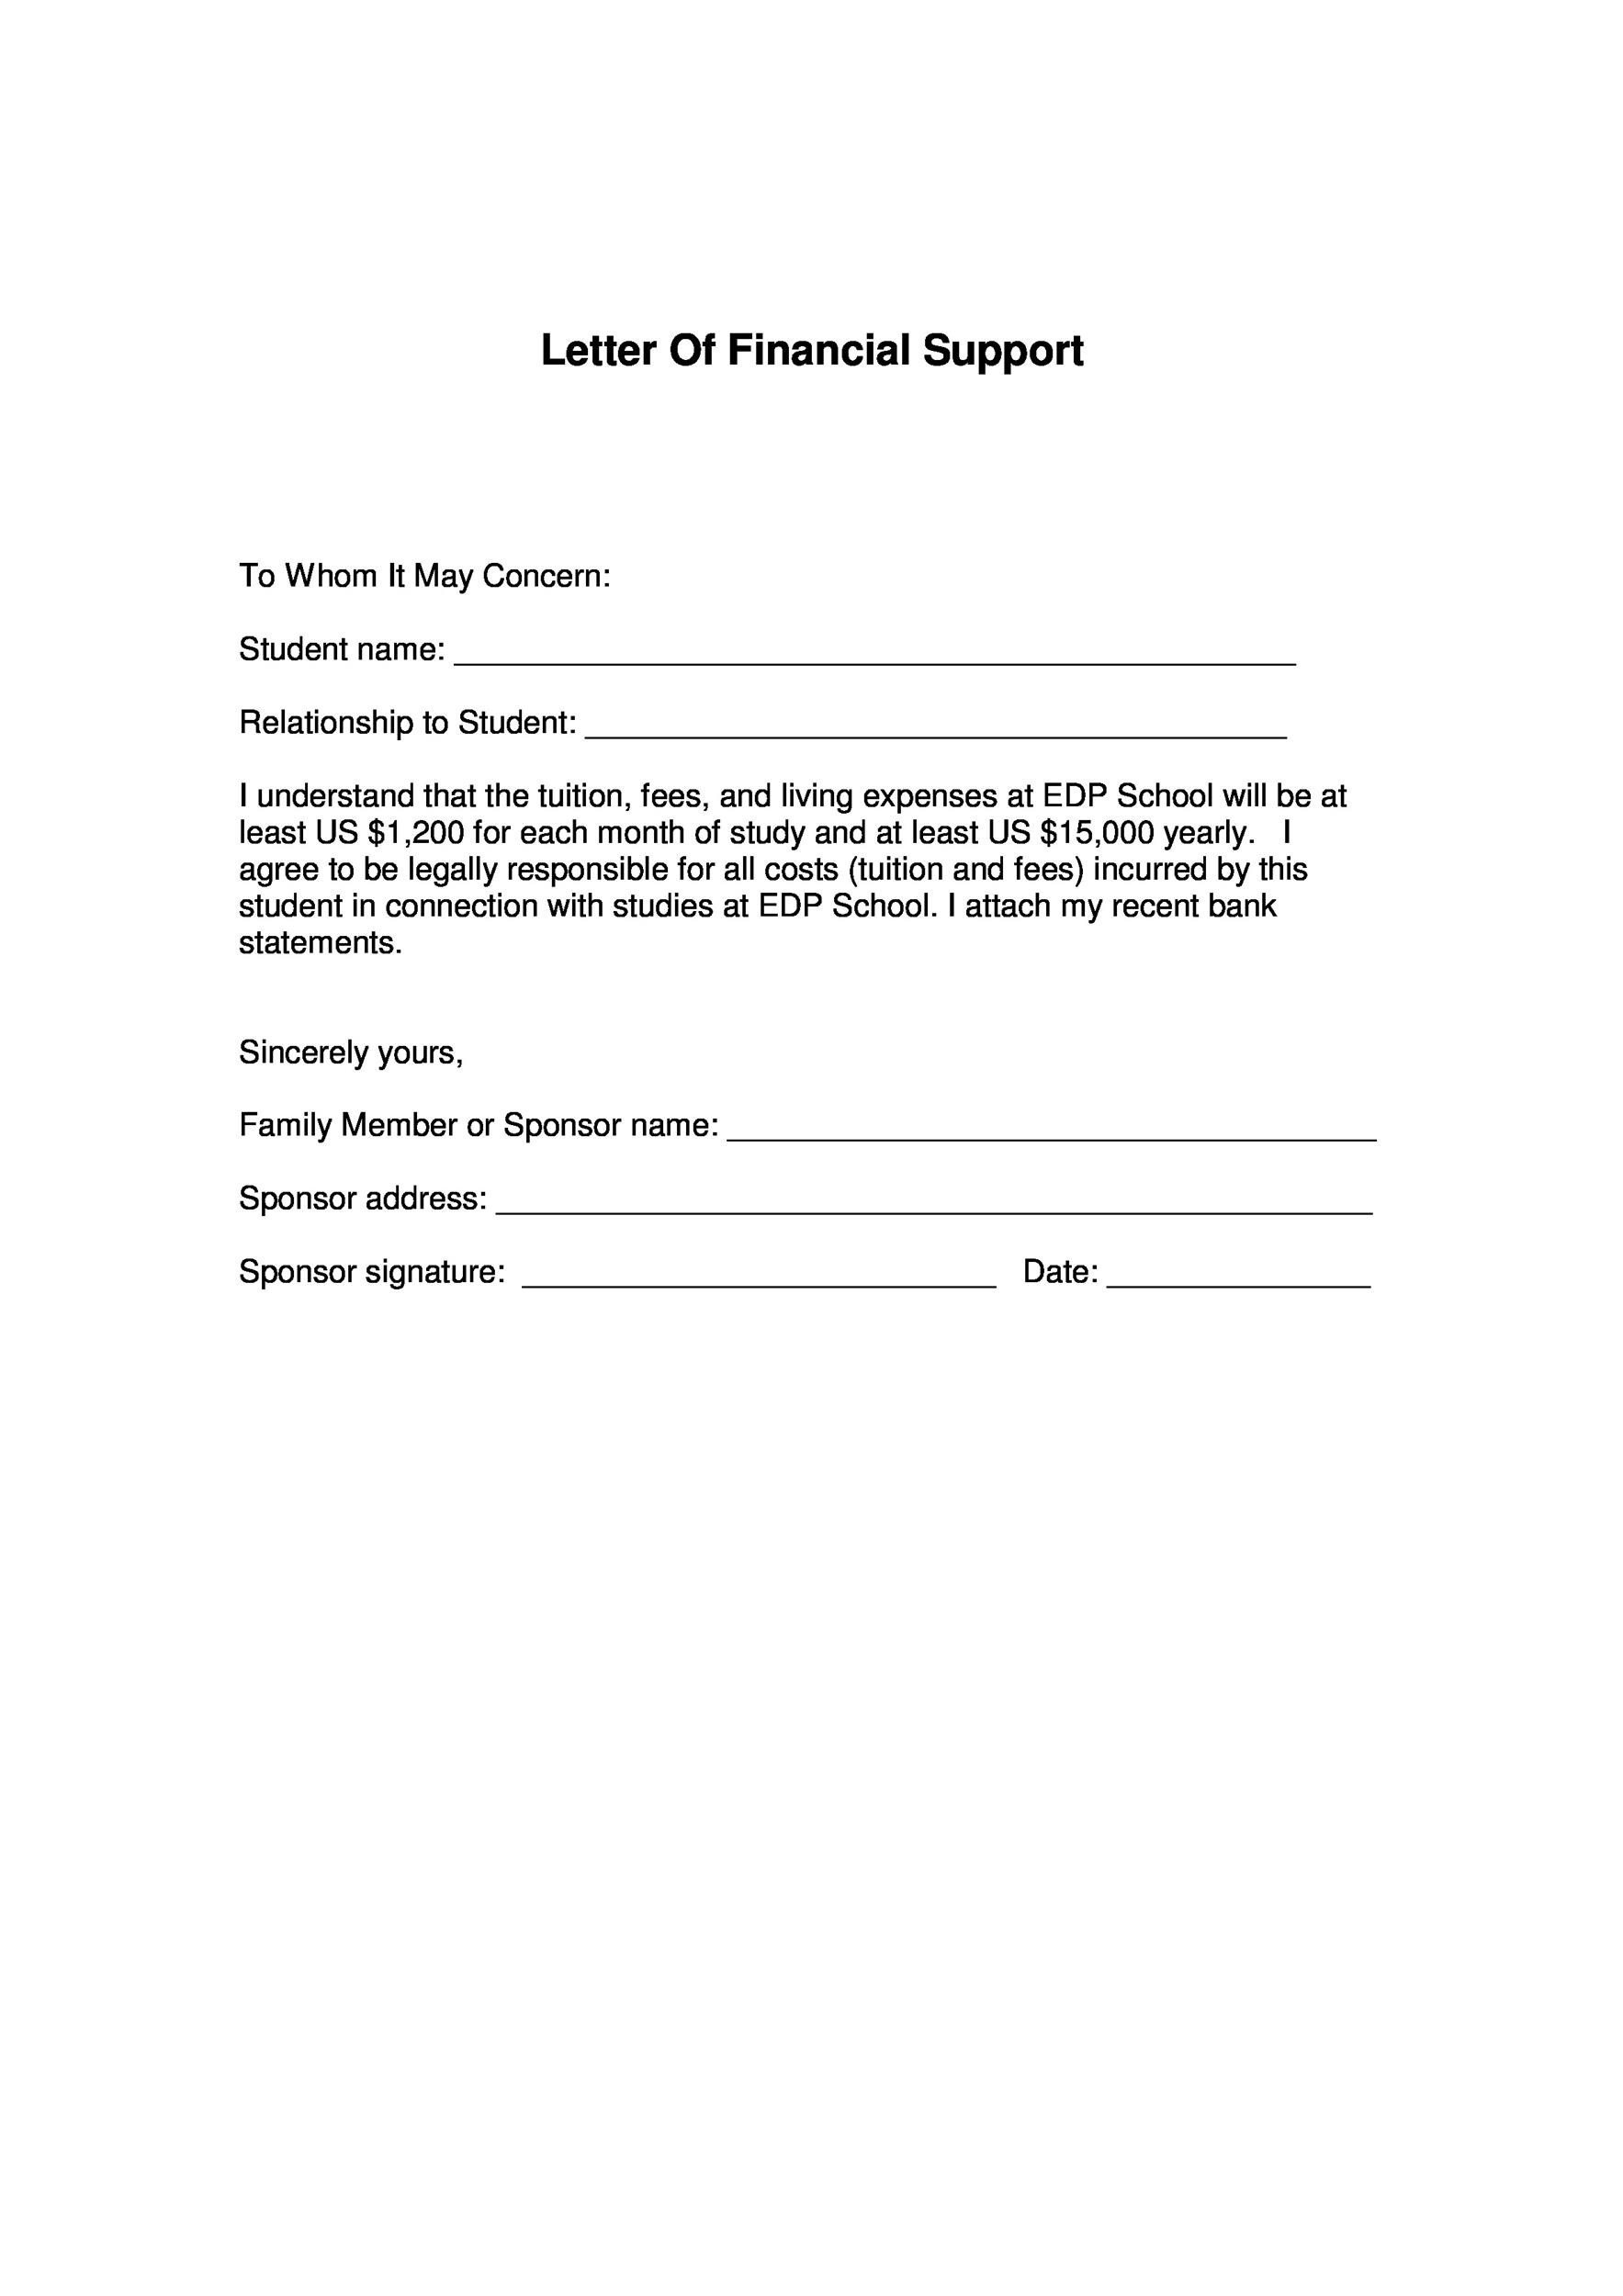 letter of financial support 40 proven letter of support templates financial for 221